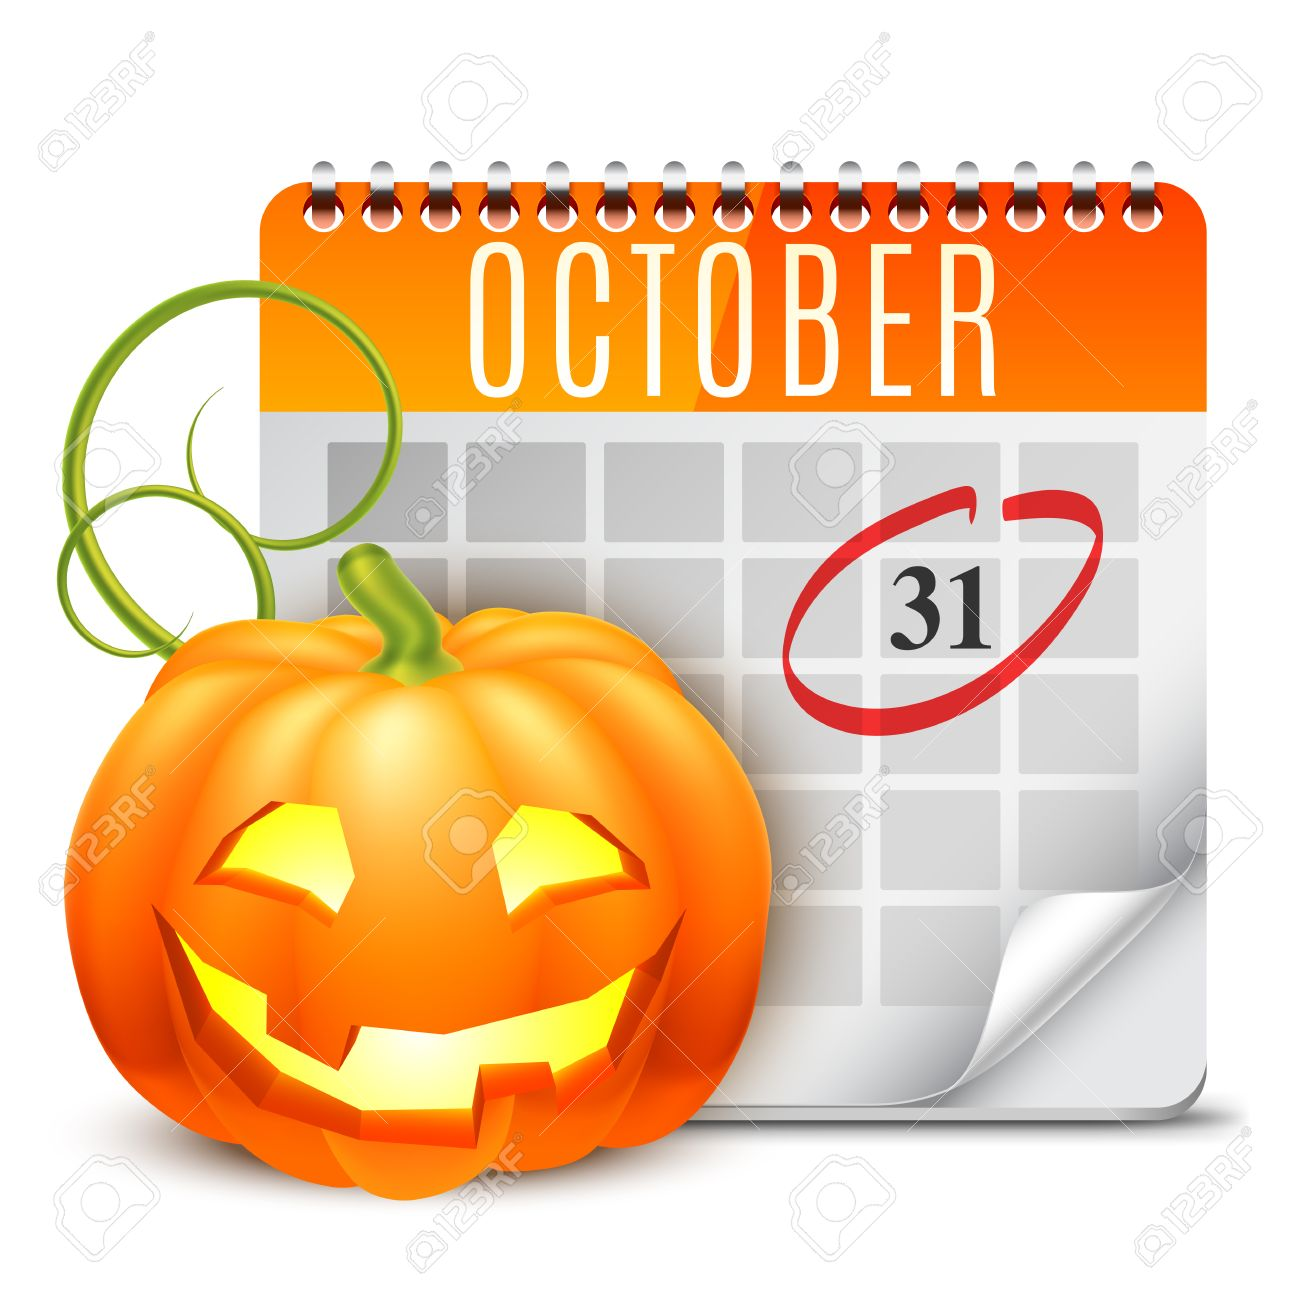 Halloween Calendar With October 31 Date And Pumpkin Royalty Free ...